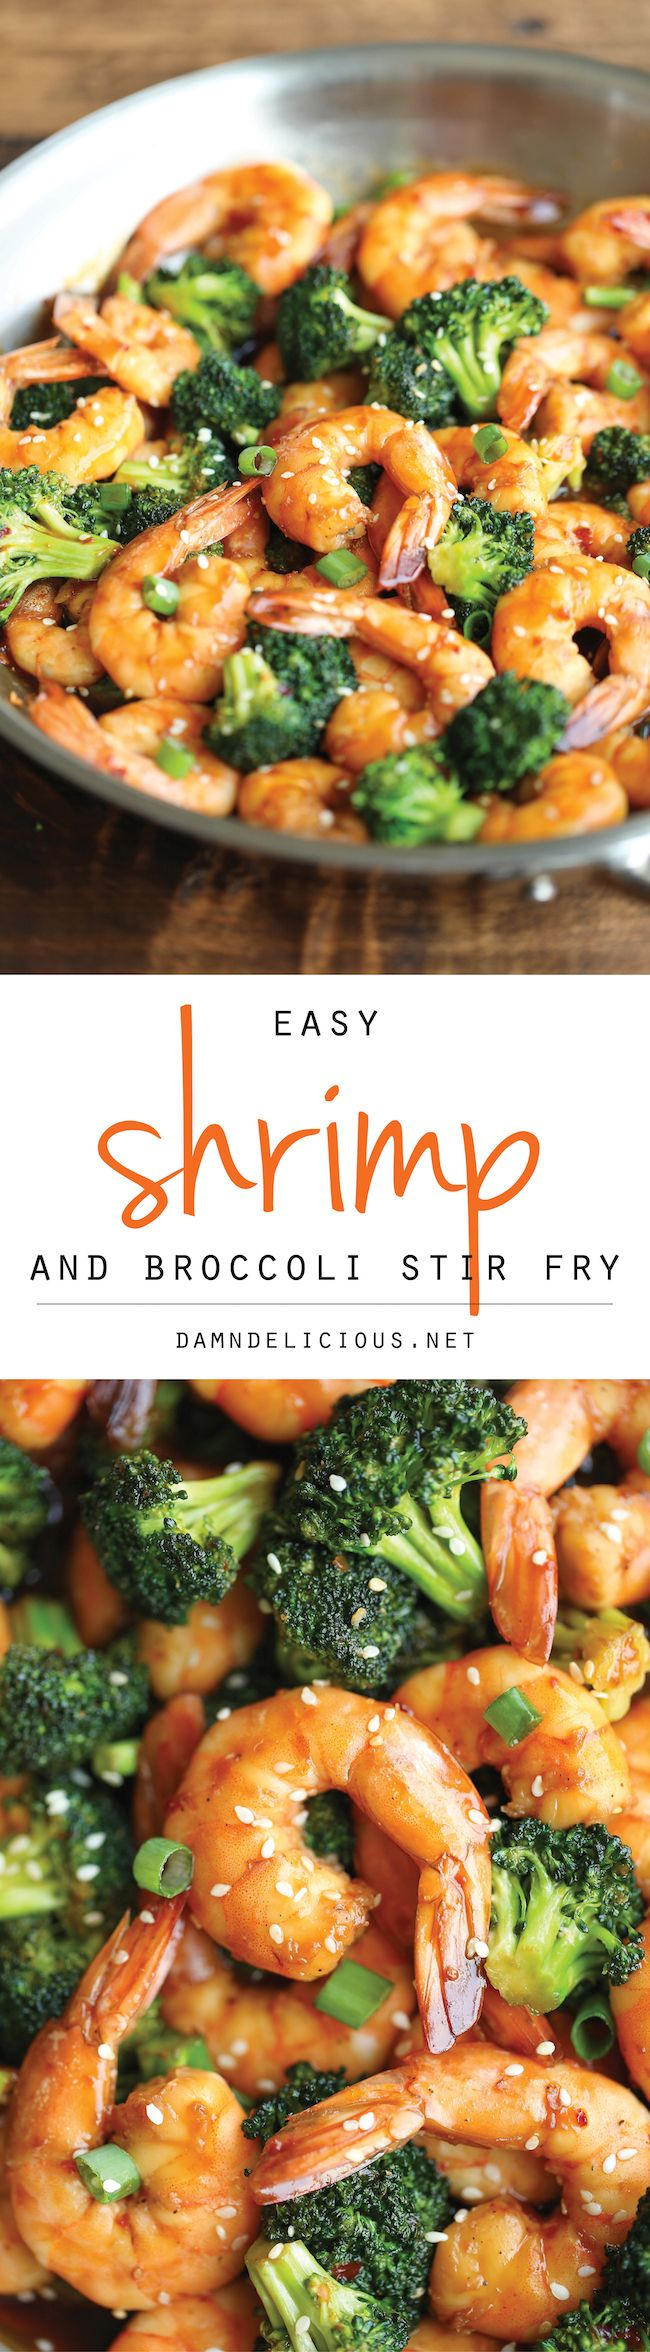 Easy Shrimp and Broccoli Stir Fry - The easiest stir fry you will ever make in just 20 min - it doesn't get easier (or quicker) than that! 287.3 calories. #healthyrecipe